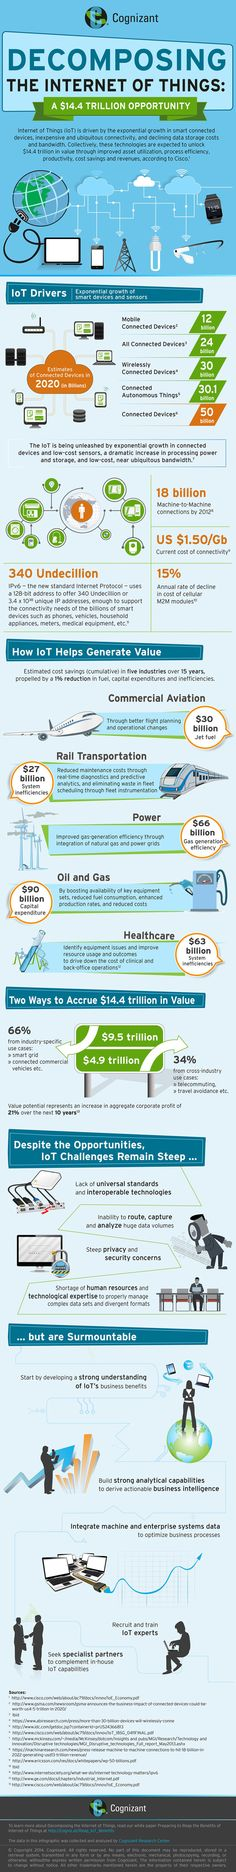 Decomposing The Internet of Things #infographic